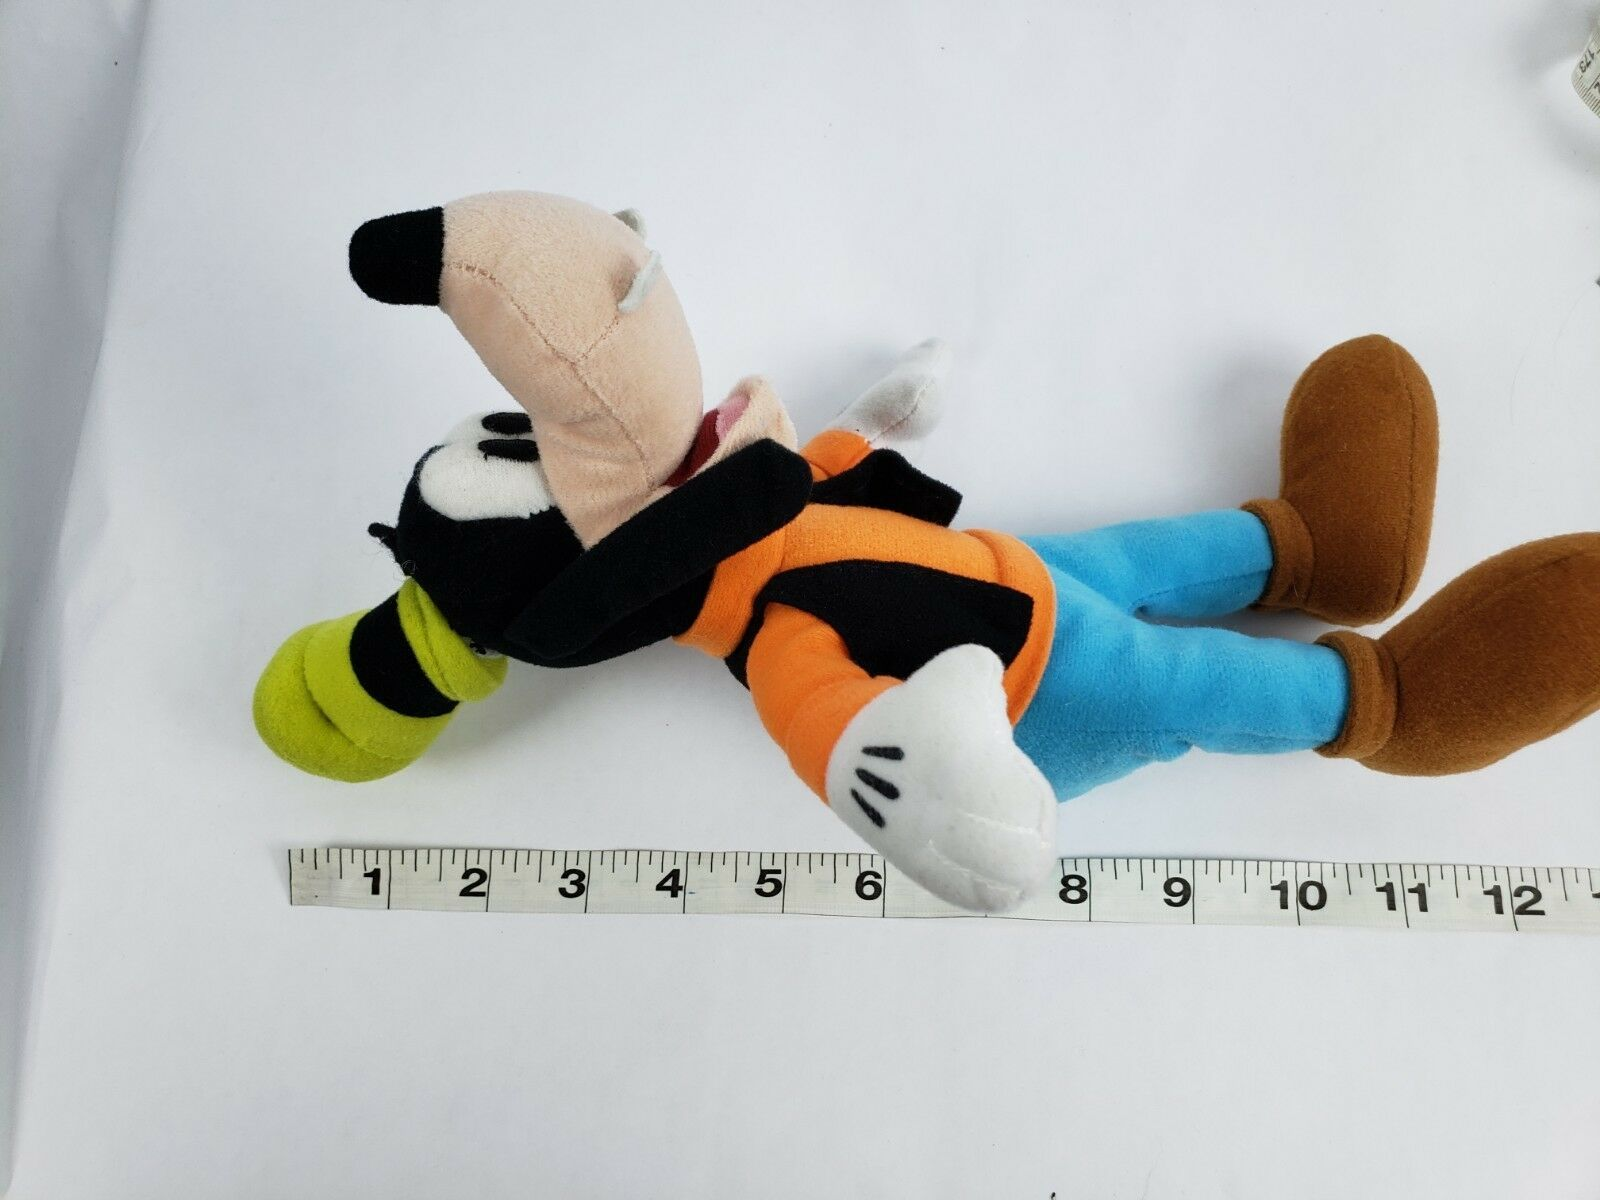 "Disney Goofy 12"" Plush Dog Mickey Mouse & Friends Stuffed Animal Soft Doll Toy image 5"